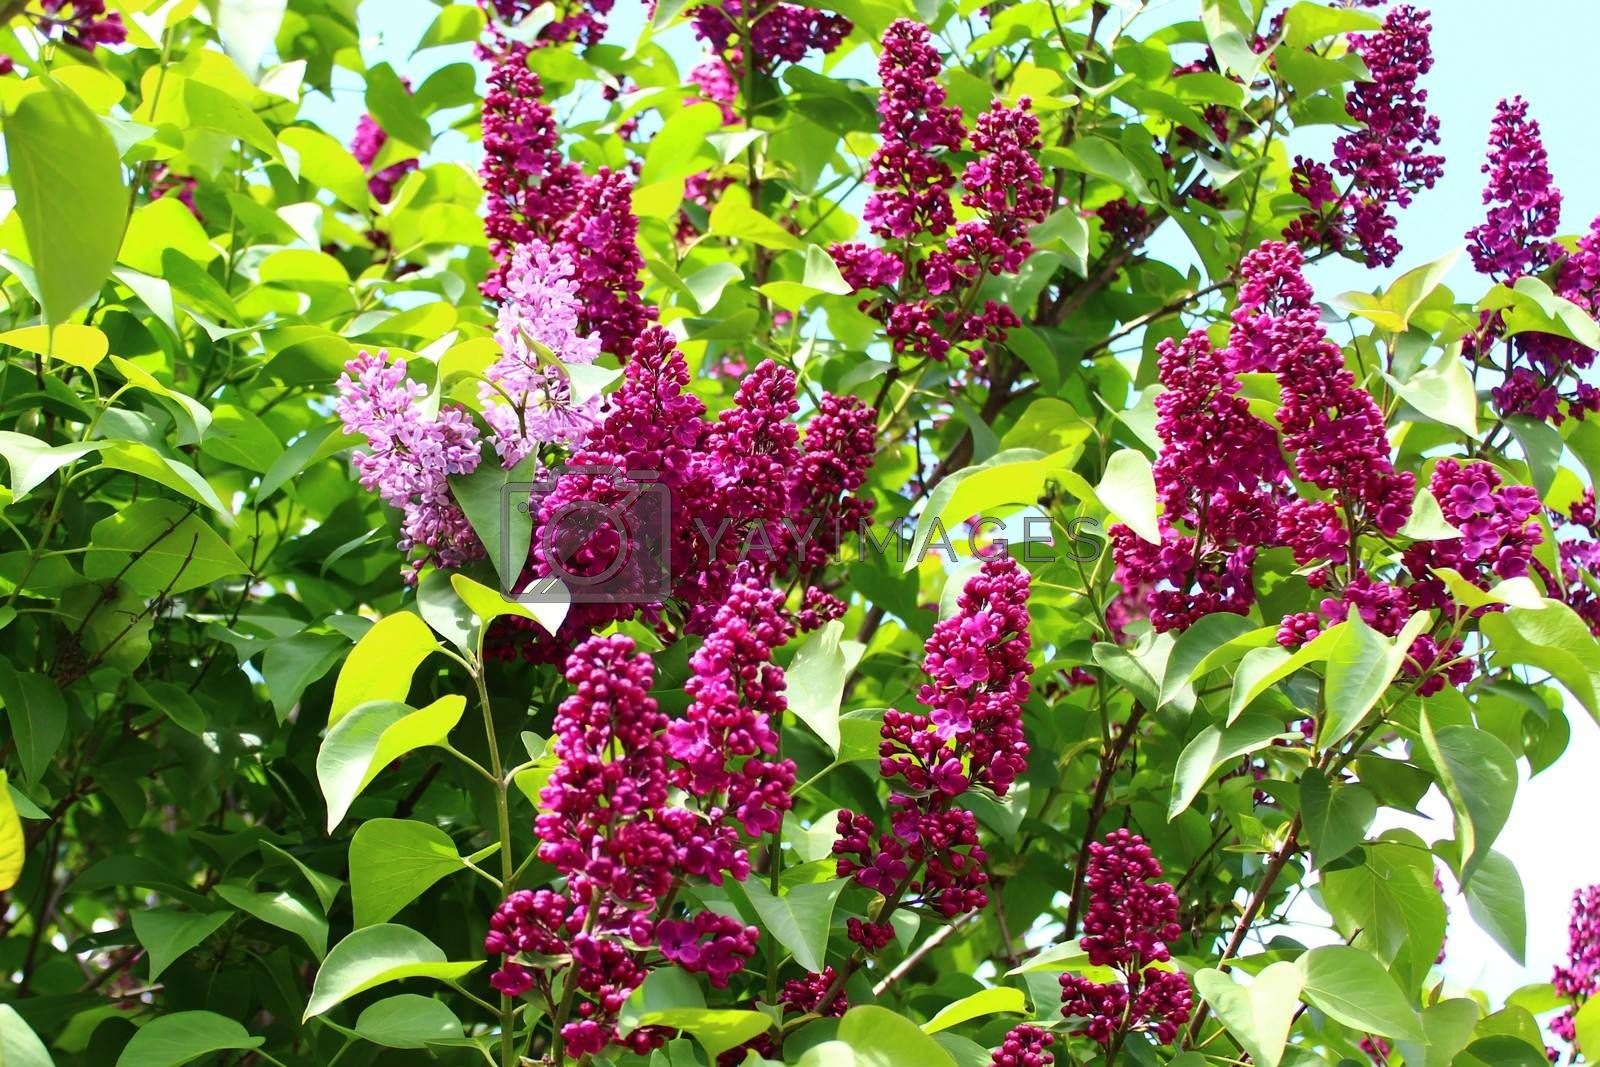 Royalty free image of beautiful lilac in the garden by martina_unbehauen